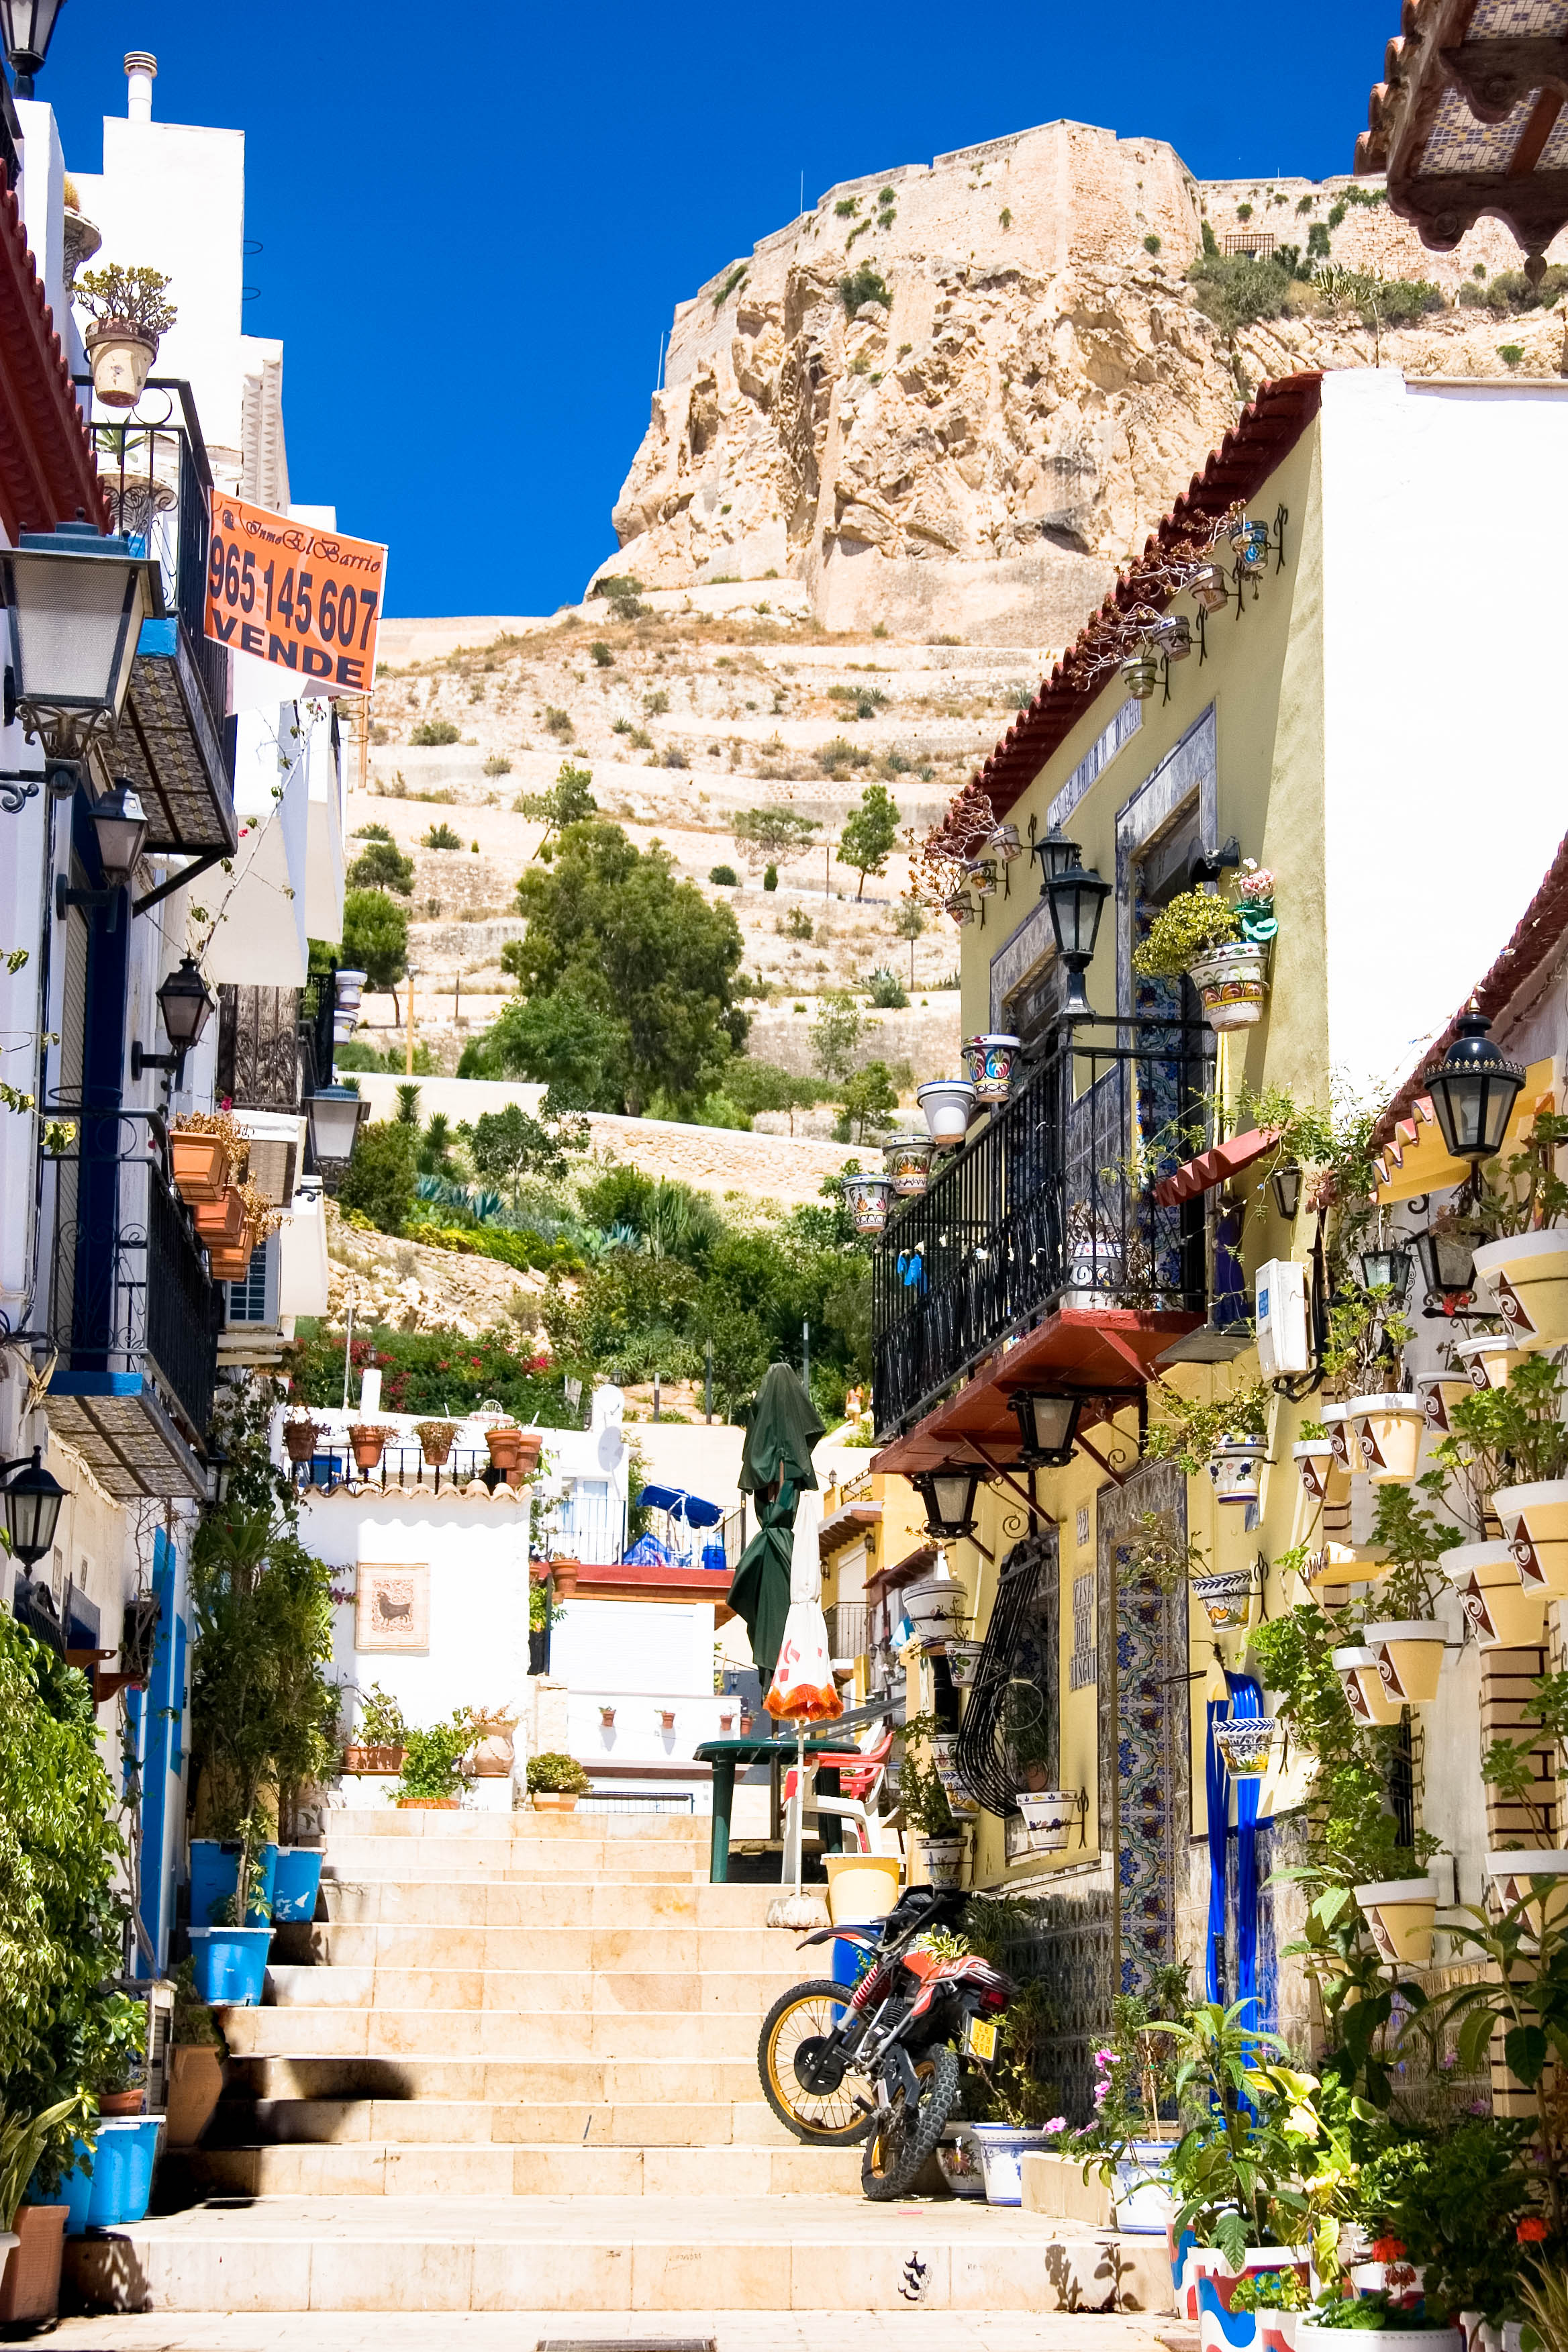 View of the fort. Alicante, Spain